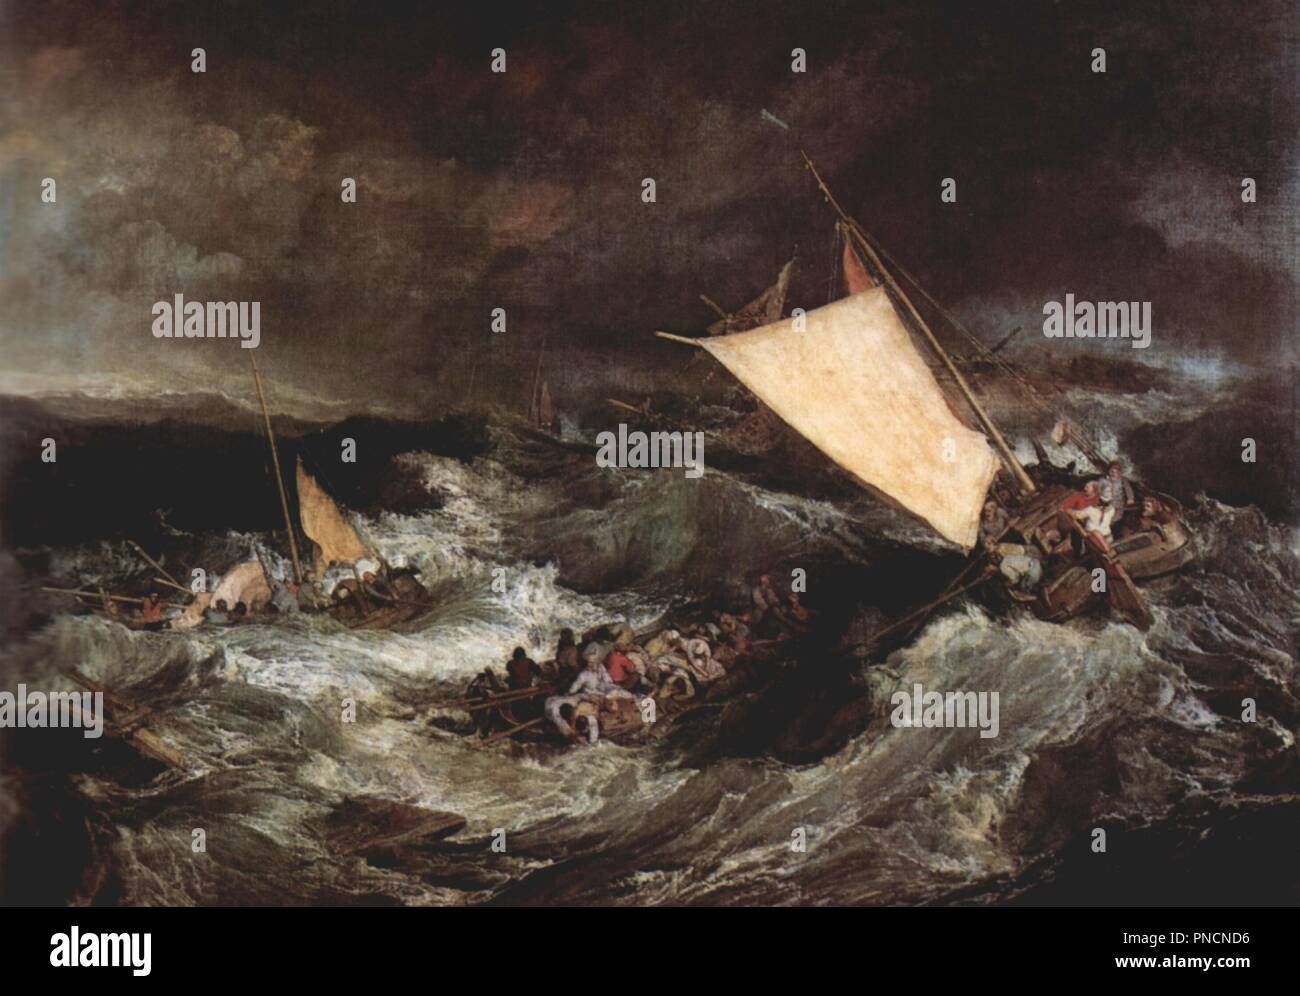 The Shipwreck. Date/Period: 1805. Painting. Oil on canvas. Height: 170.5 cm (67.1 in); Width: 241.5 cm (95 in). Author: J. M. W. Turner. TURNER, JOSEPH MALLORD WILLIAM. ROUSSEAU, HENRI. TURNER, CHARLES. - Stock Image